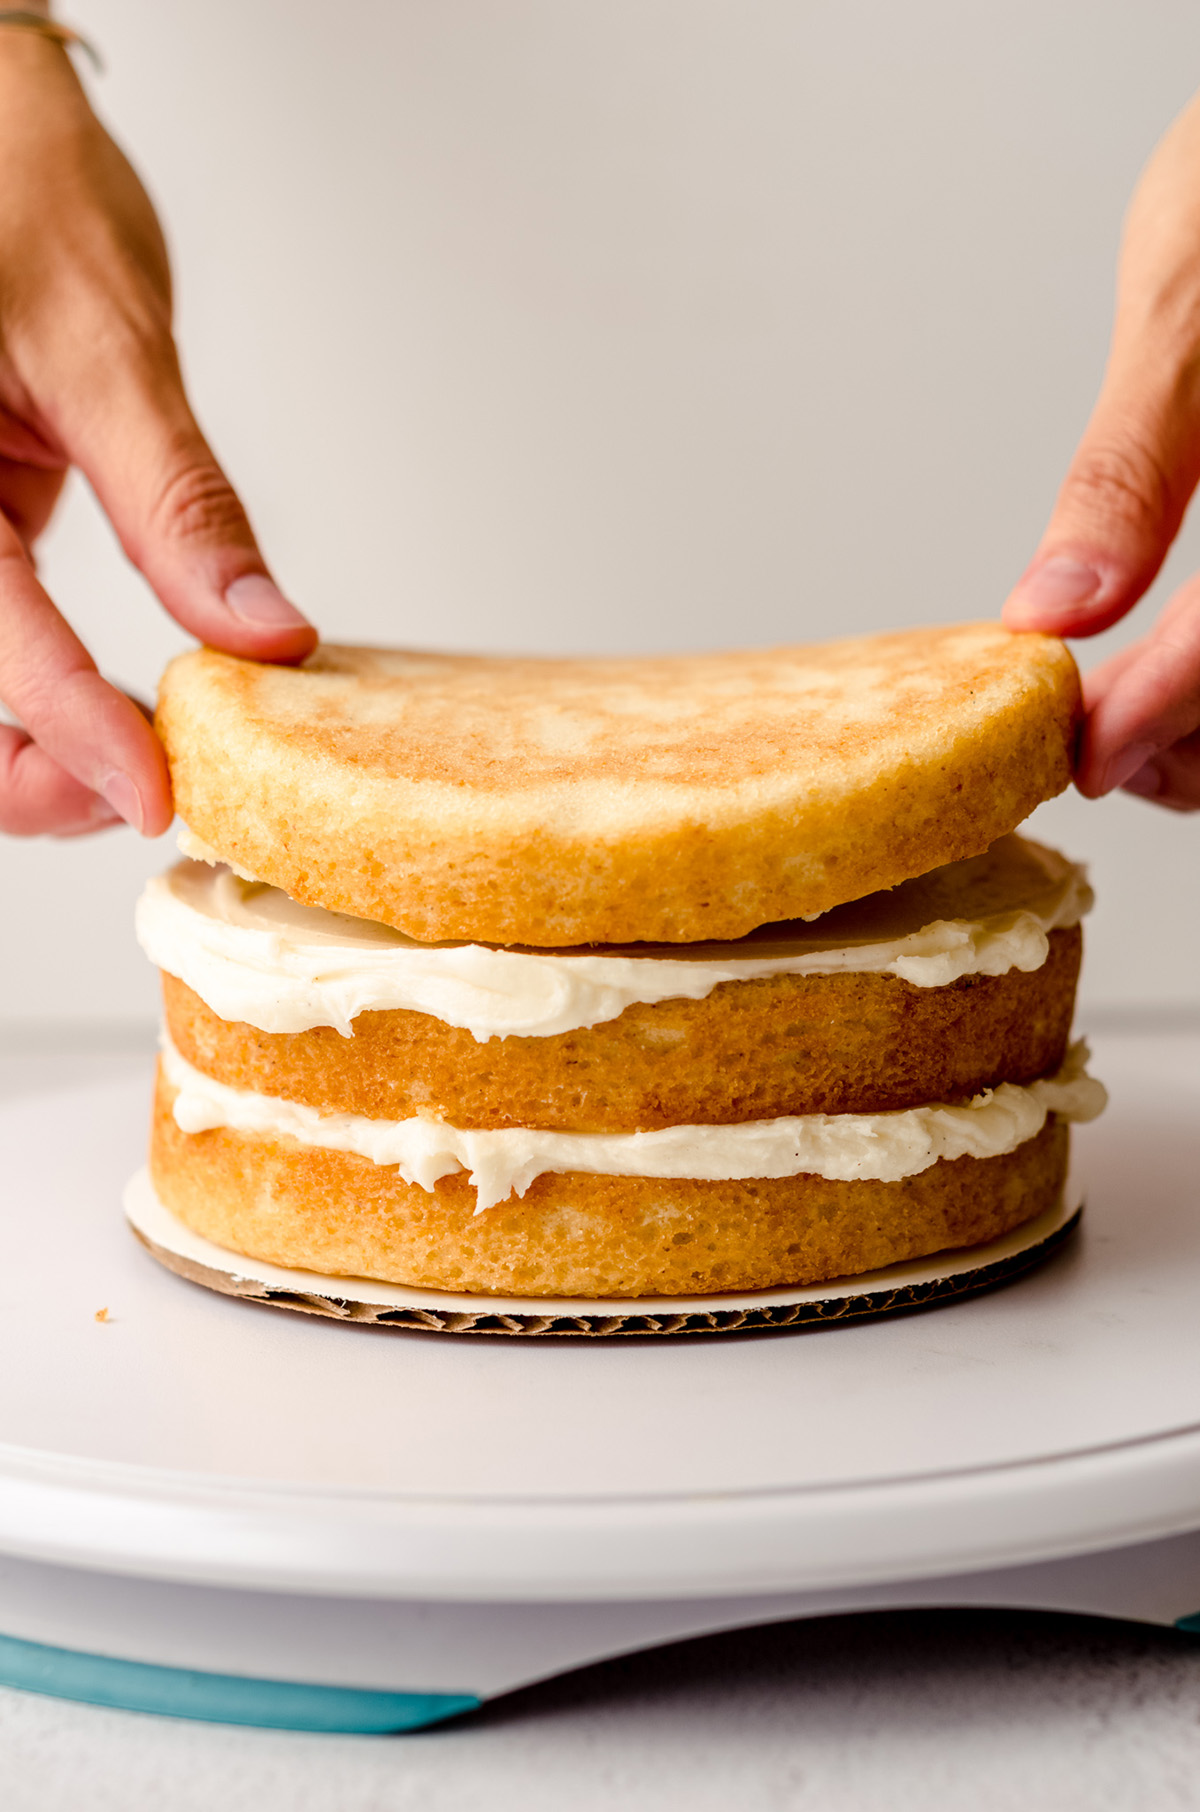 hands putting a third layer on a stacked cake